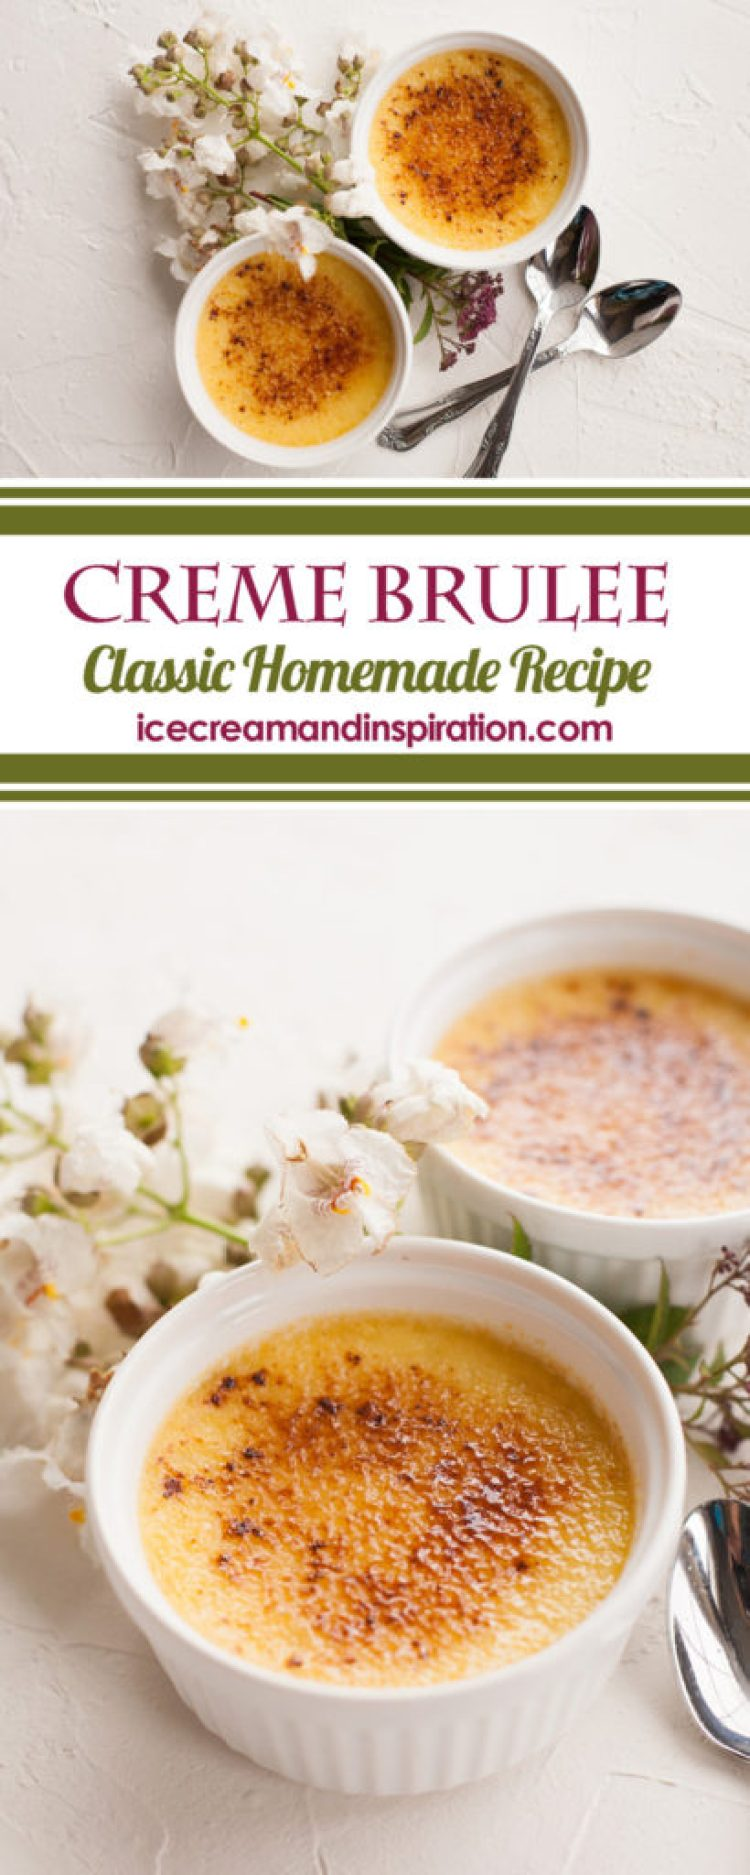 Follow the step-by-step tutorial for making Classic Creme Brulee at home. The ultimate impressive dessert of smooth vanilla custard topped with crackling caramelized sugar.